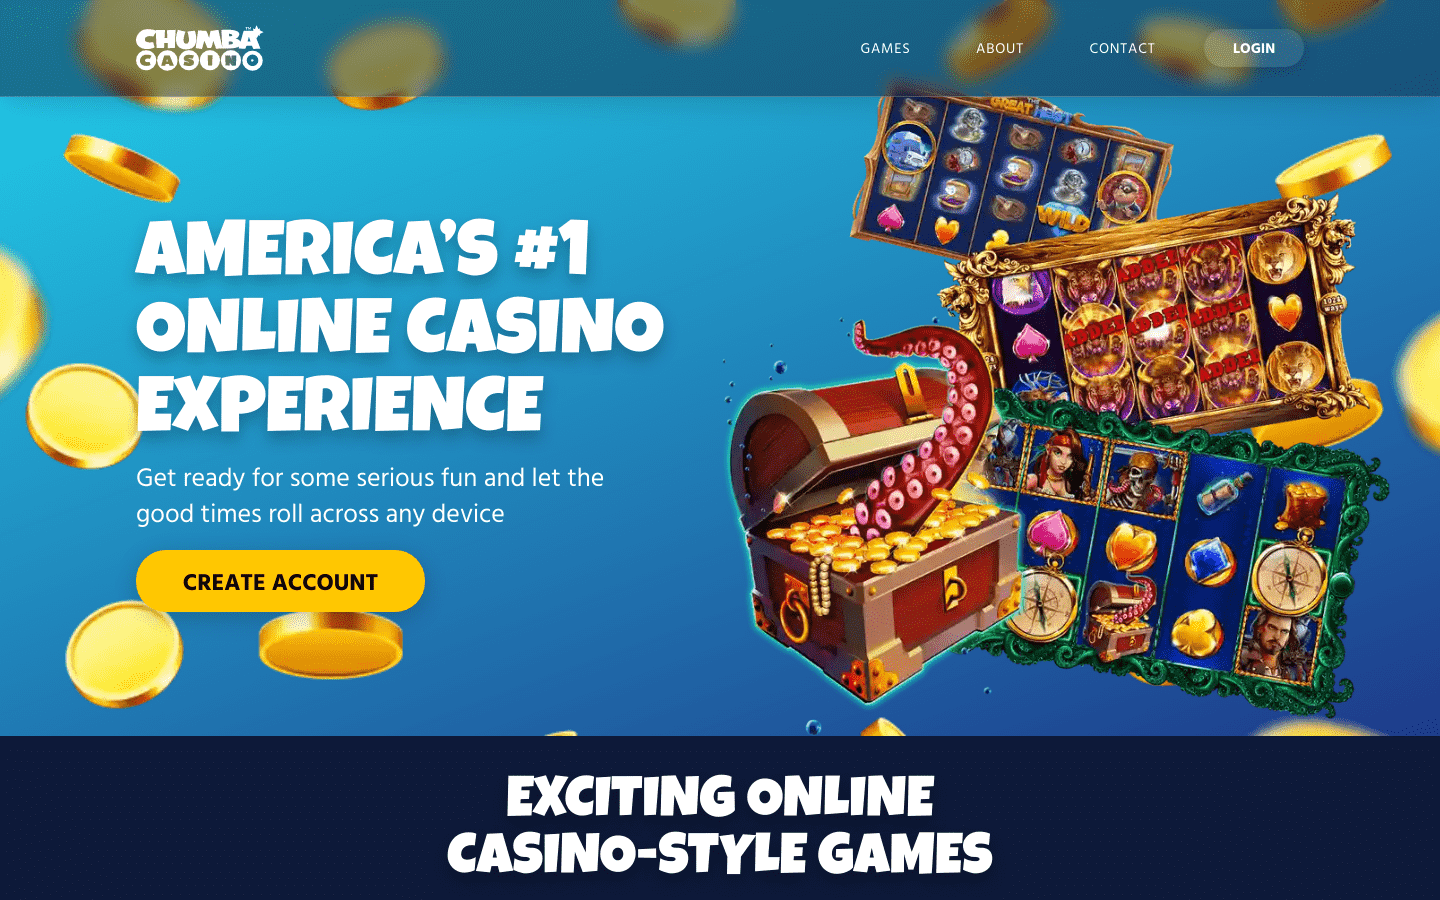 Chumba Casino reviews and complaints